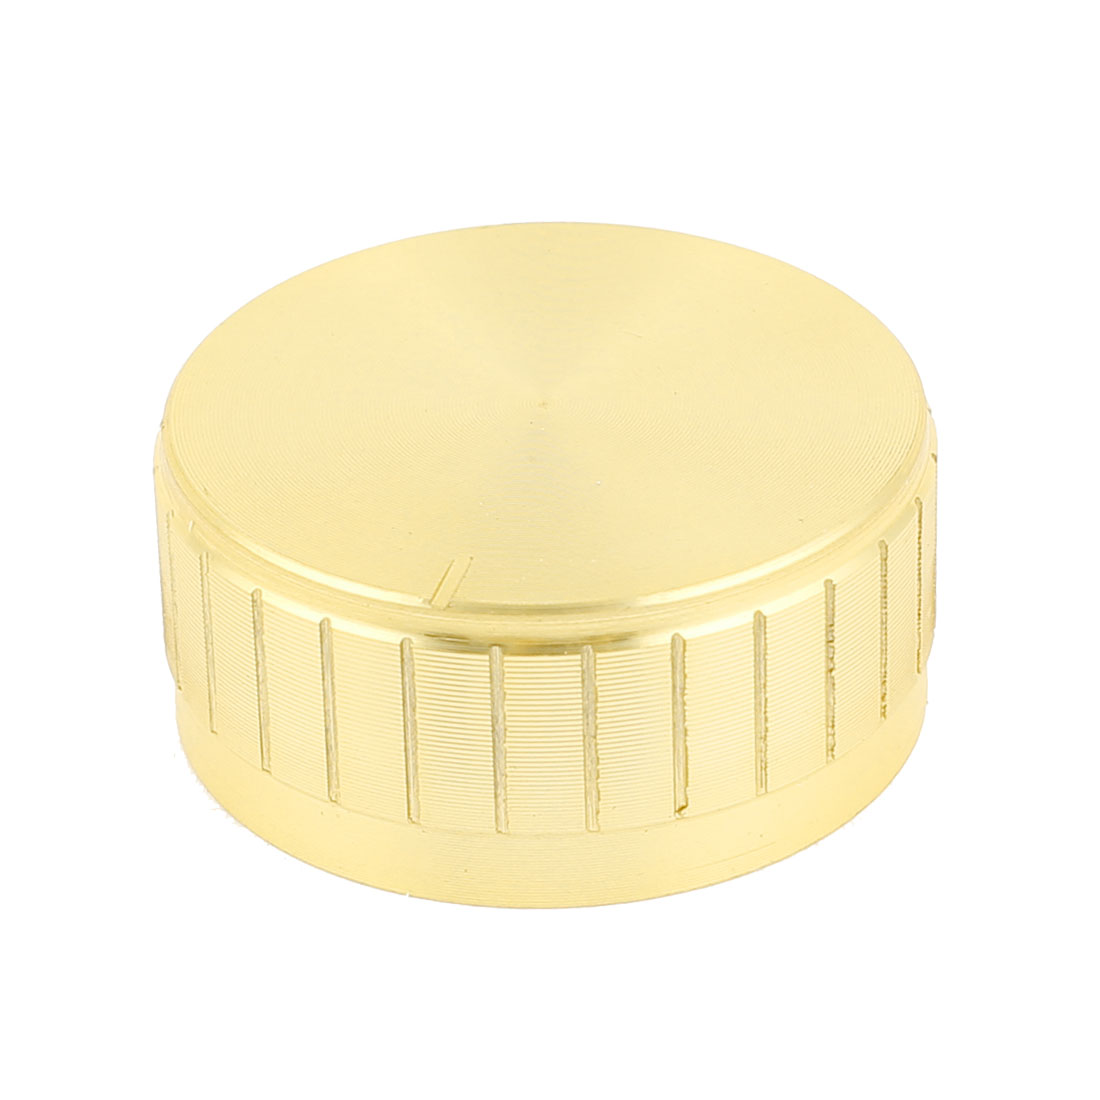 Gold Tone Plastic Potentiometer Rotary Control Knobs Caps 17x40mm